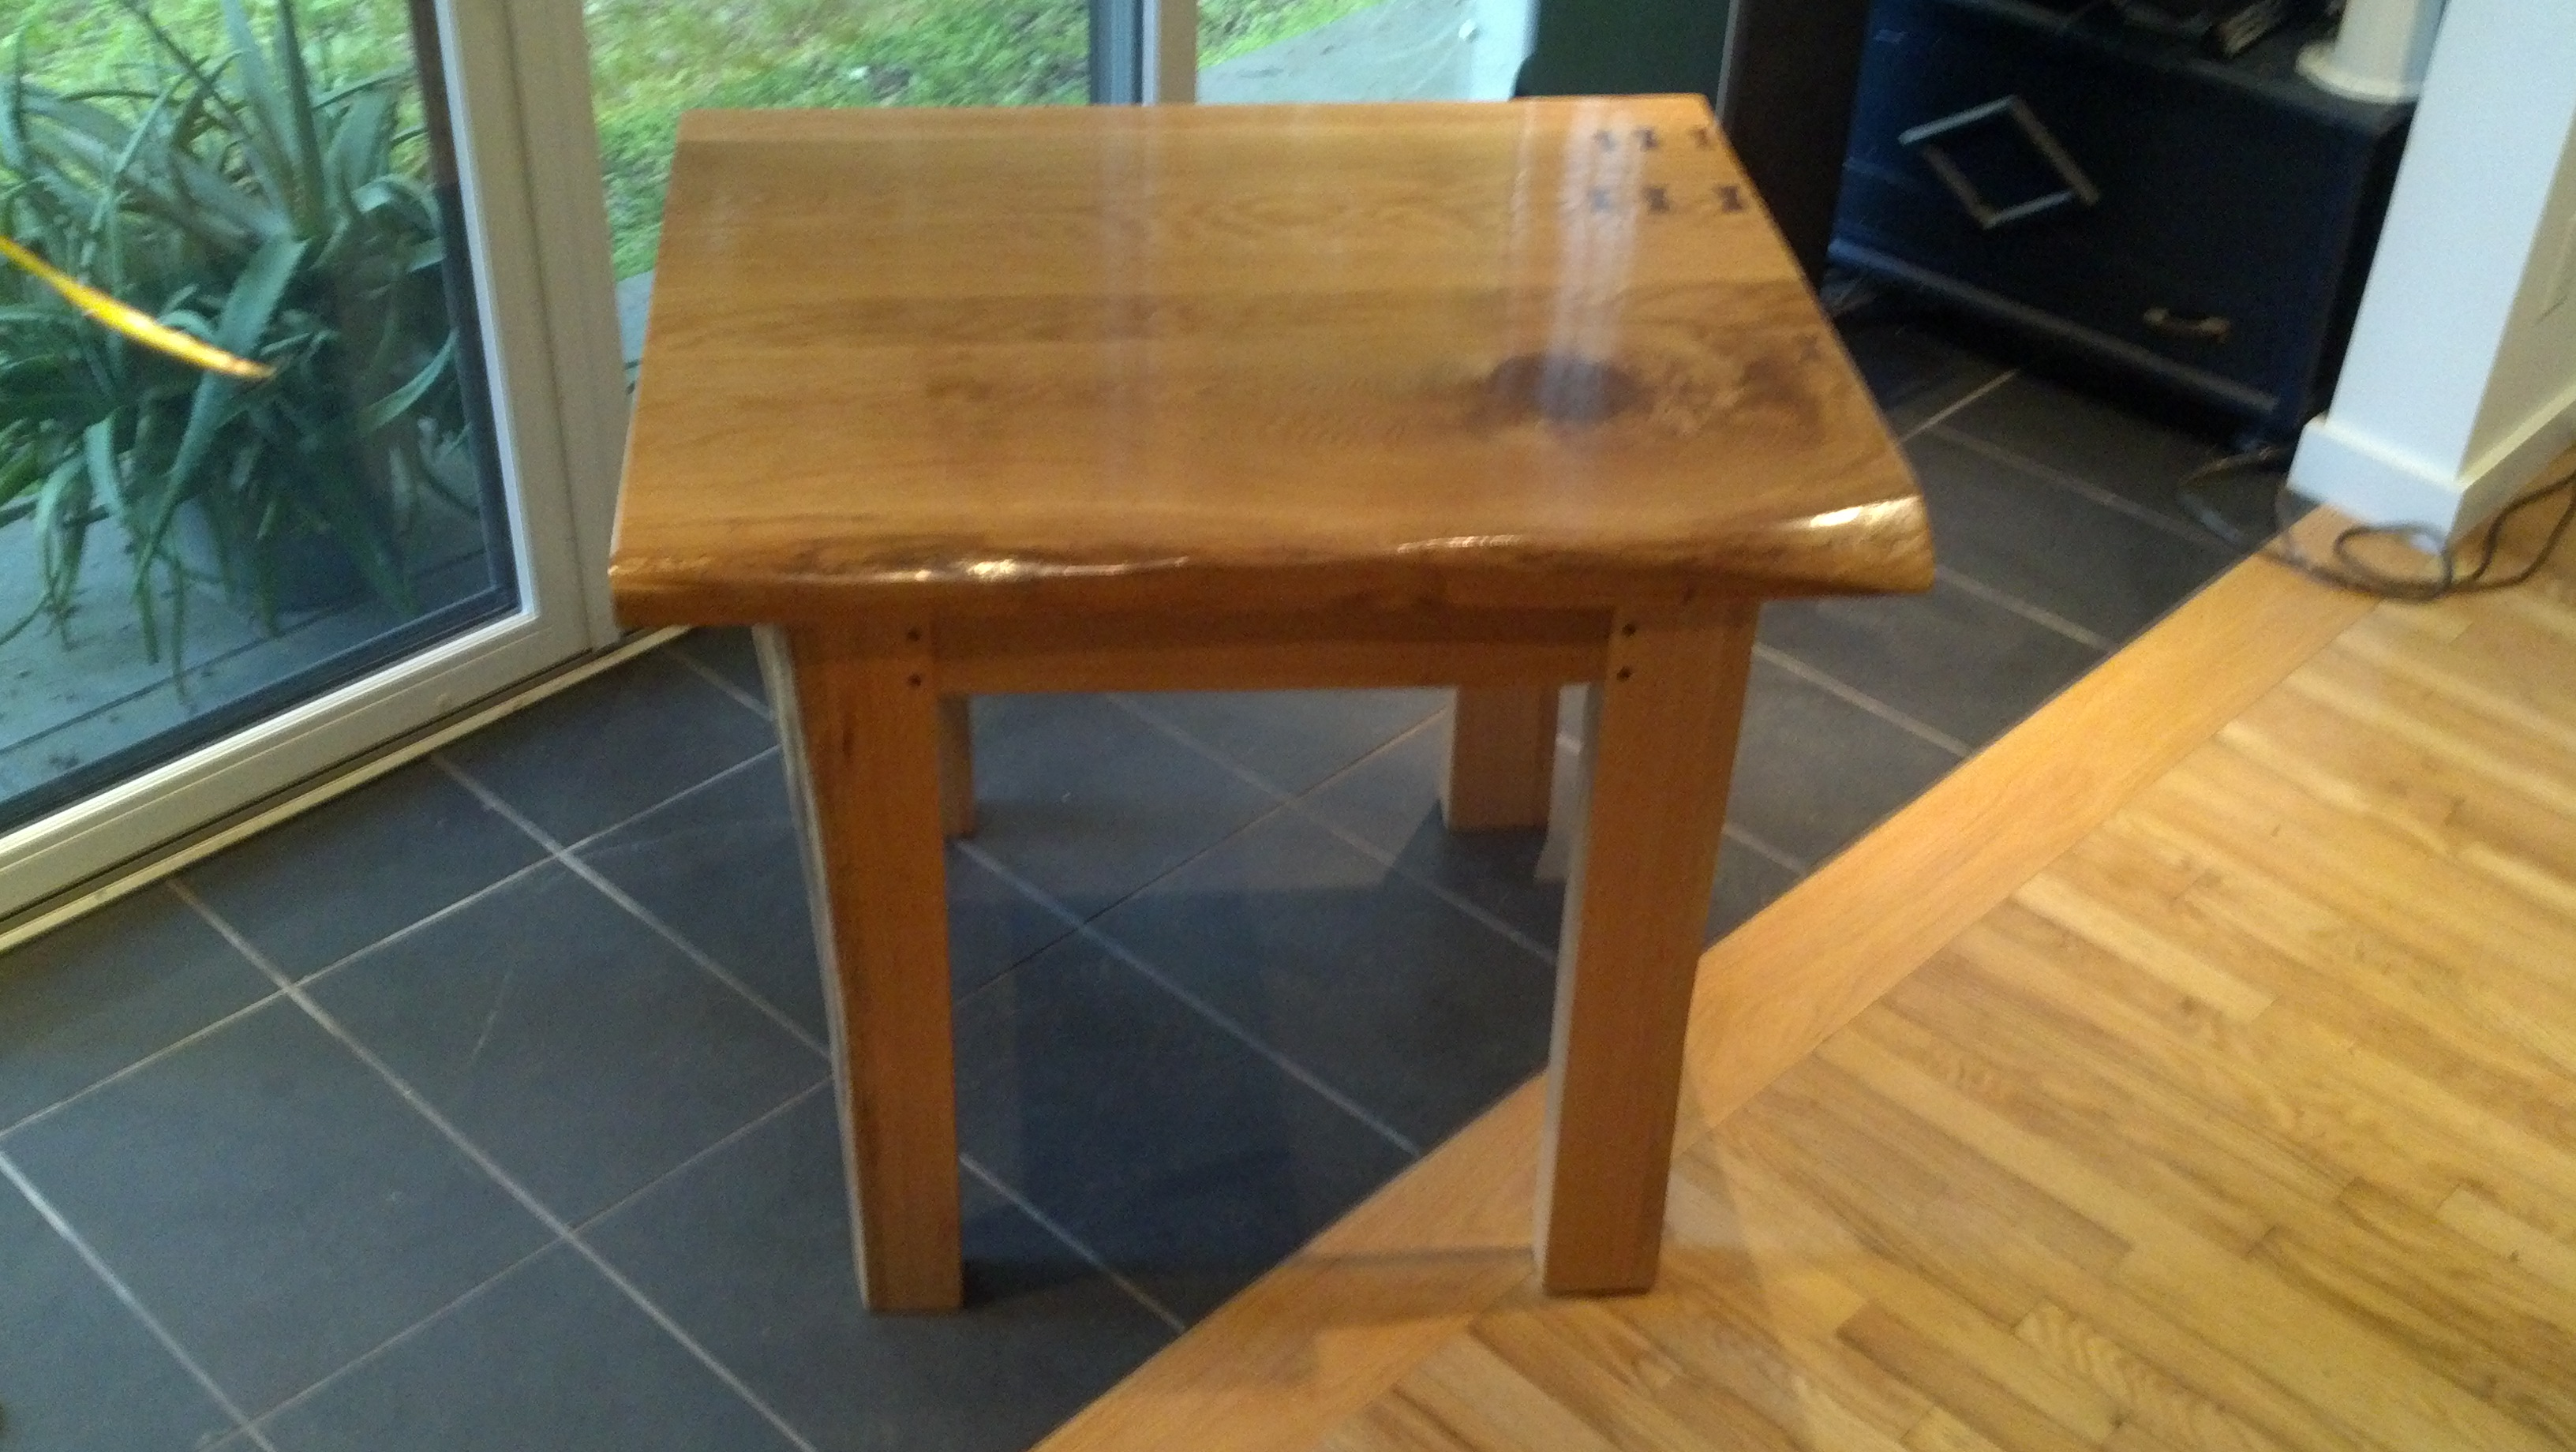 Small oak kitchen table with walnut accents by No Walls Studio